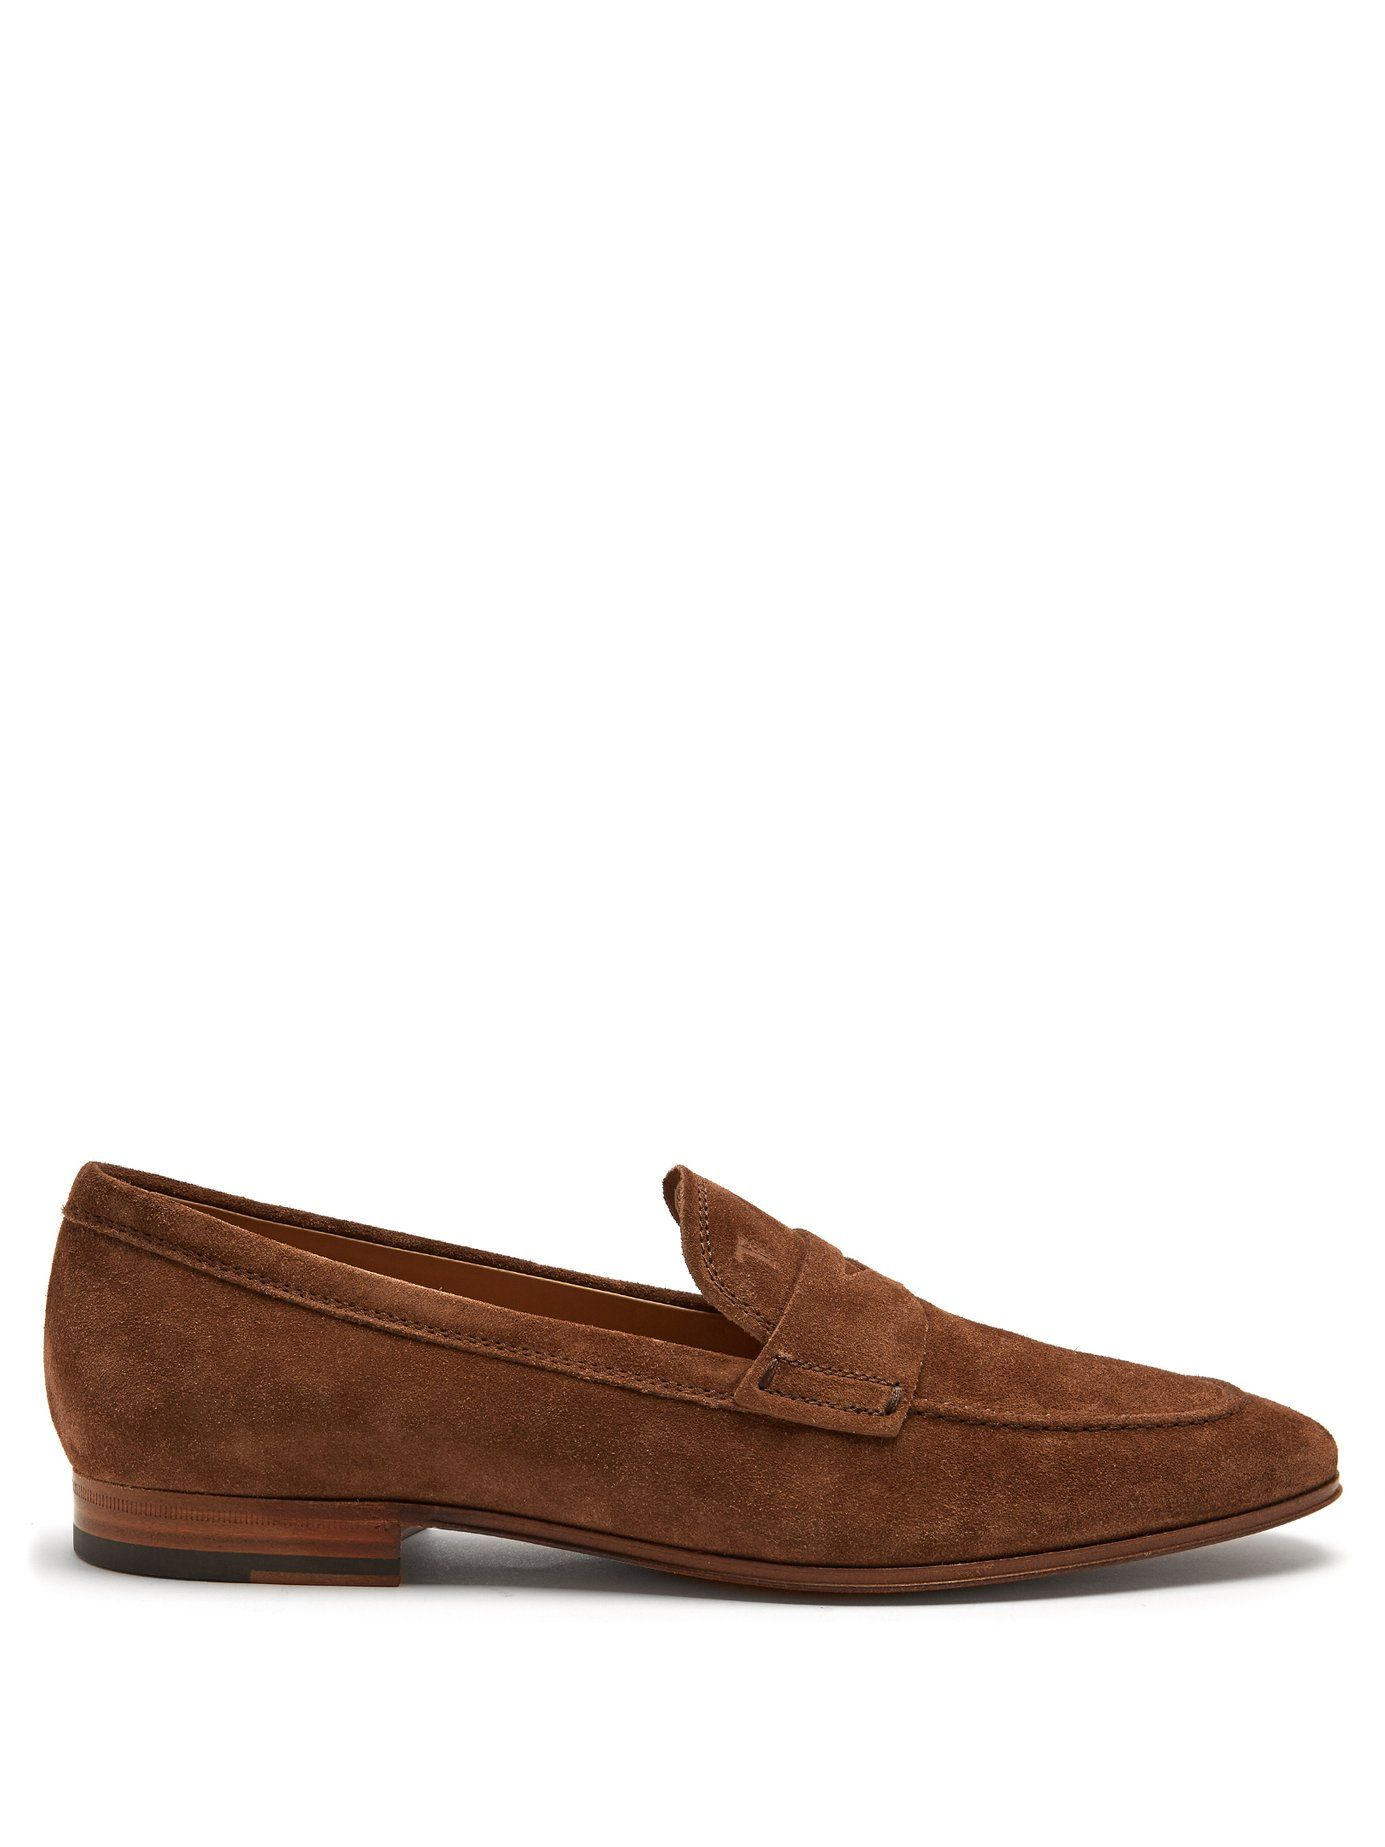 5a95408e2d7 Click here to buy Tod s Round-toe suede penny loafers at MATCHESFASHION.COM